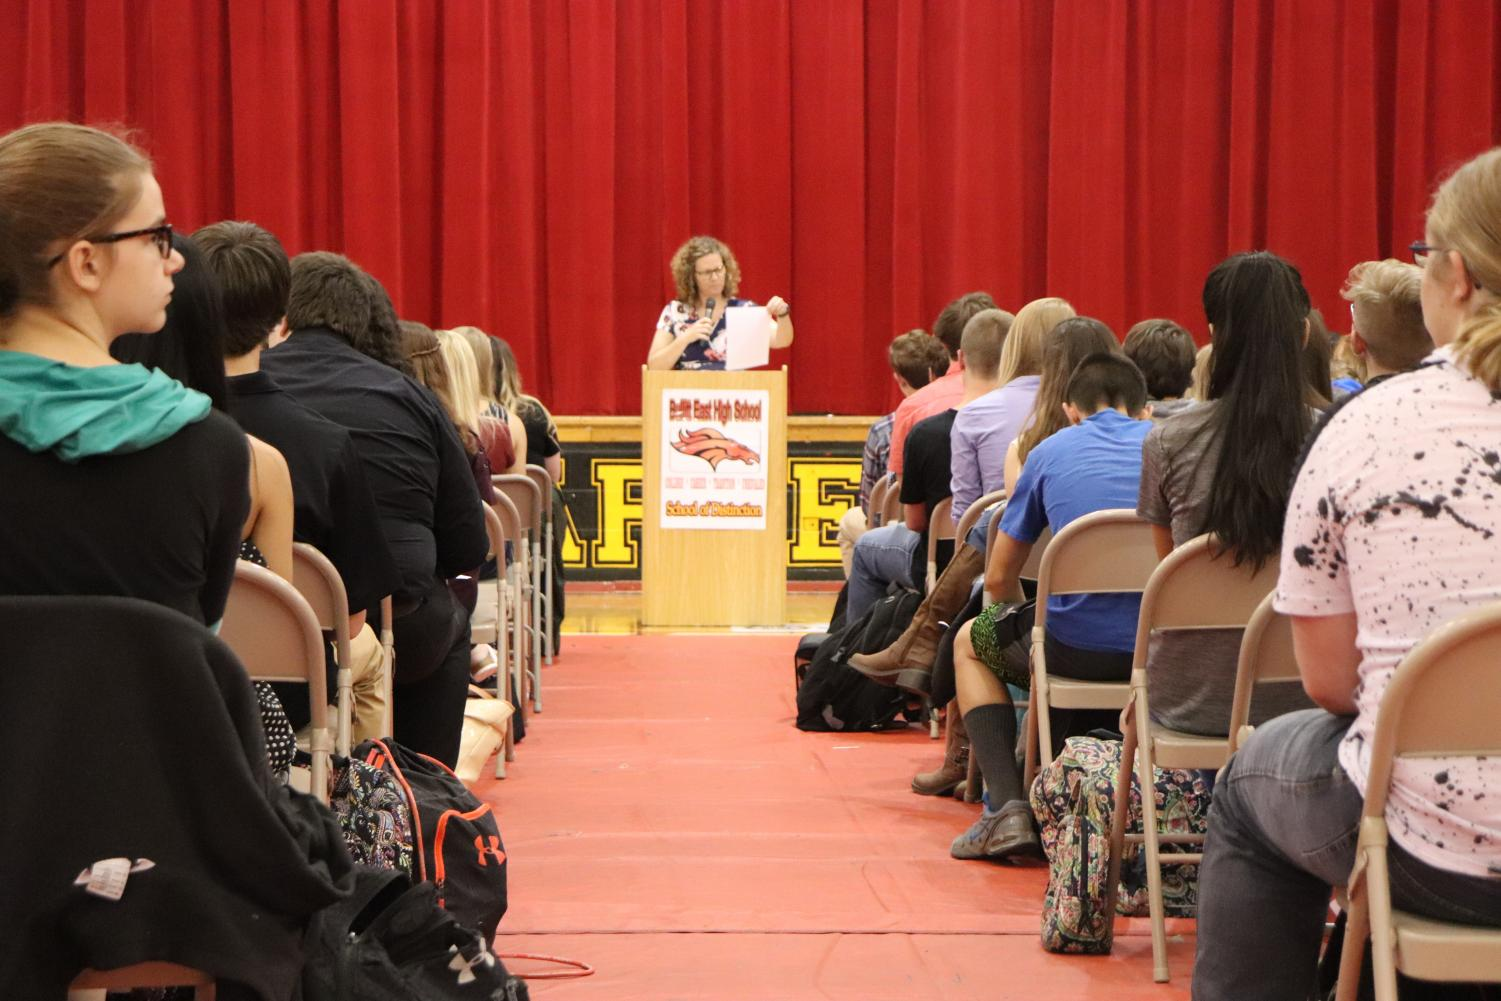 Guidance Counselor Dana Steinmetz announces awards for academic achievement.